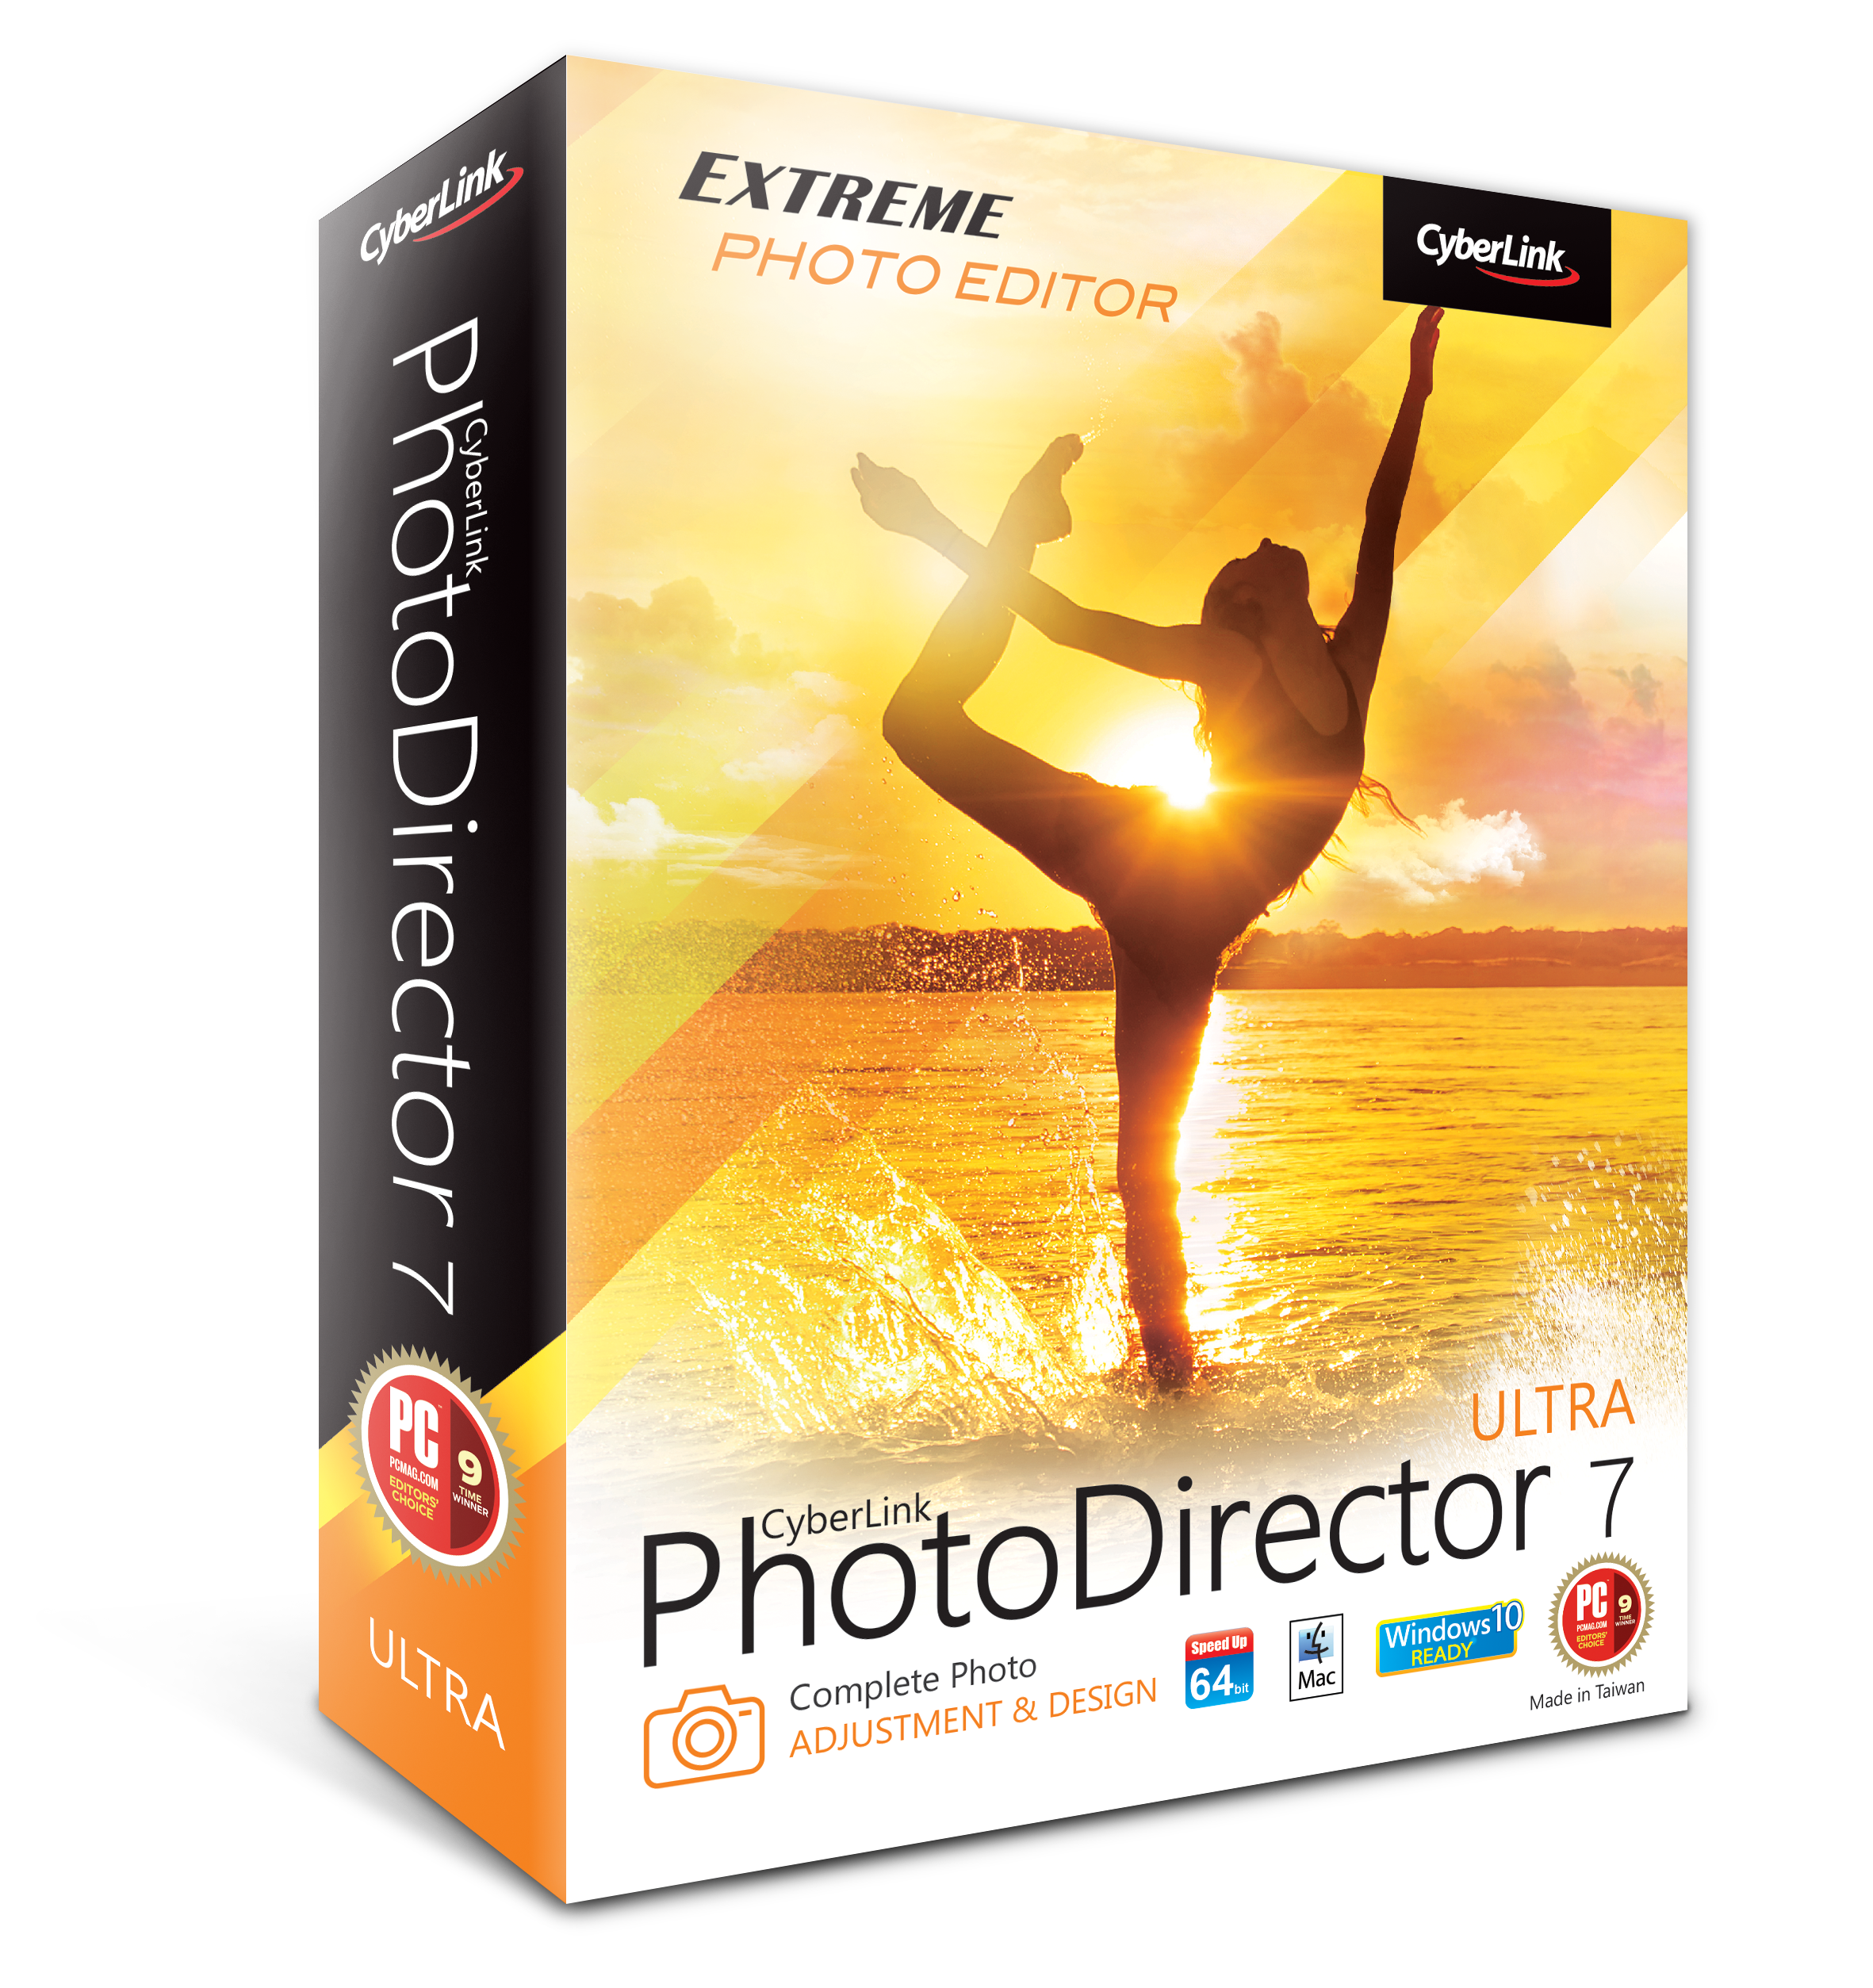 Upgrade to PhotoDirector 7 Ultra from PhotoDirector v.5/6 Suite